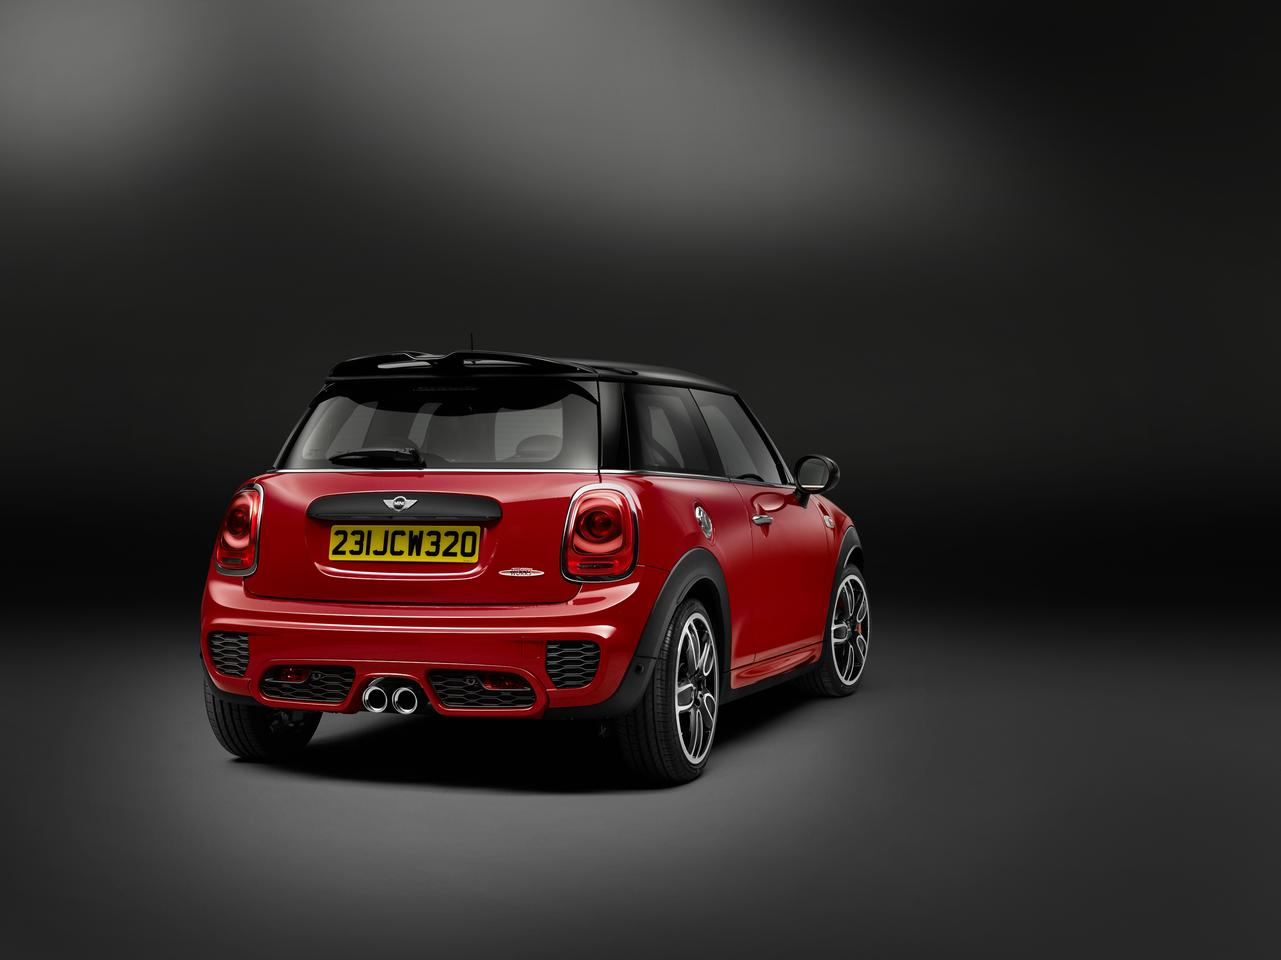 The JCW is fitted with a new rear bumper and spoiler